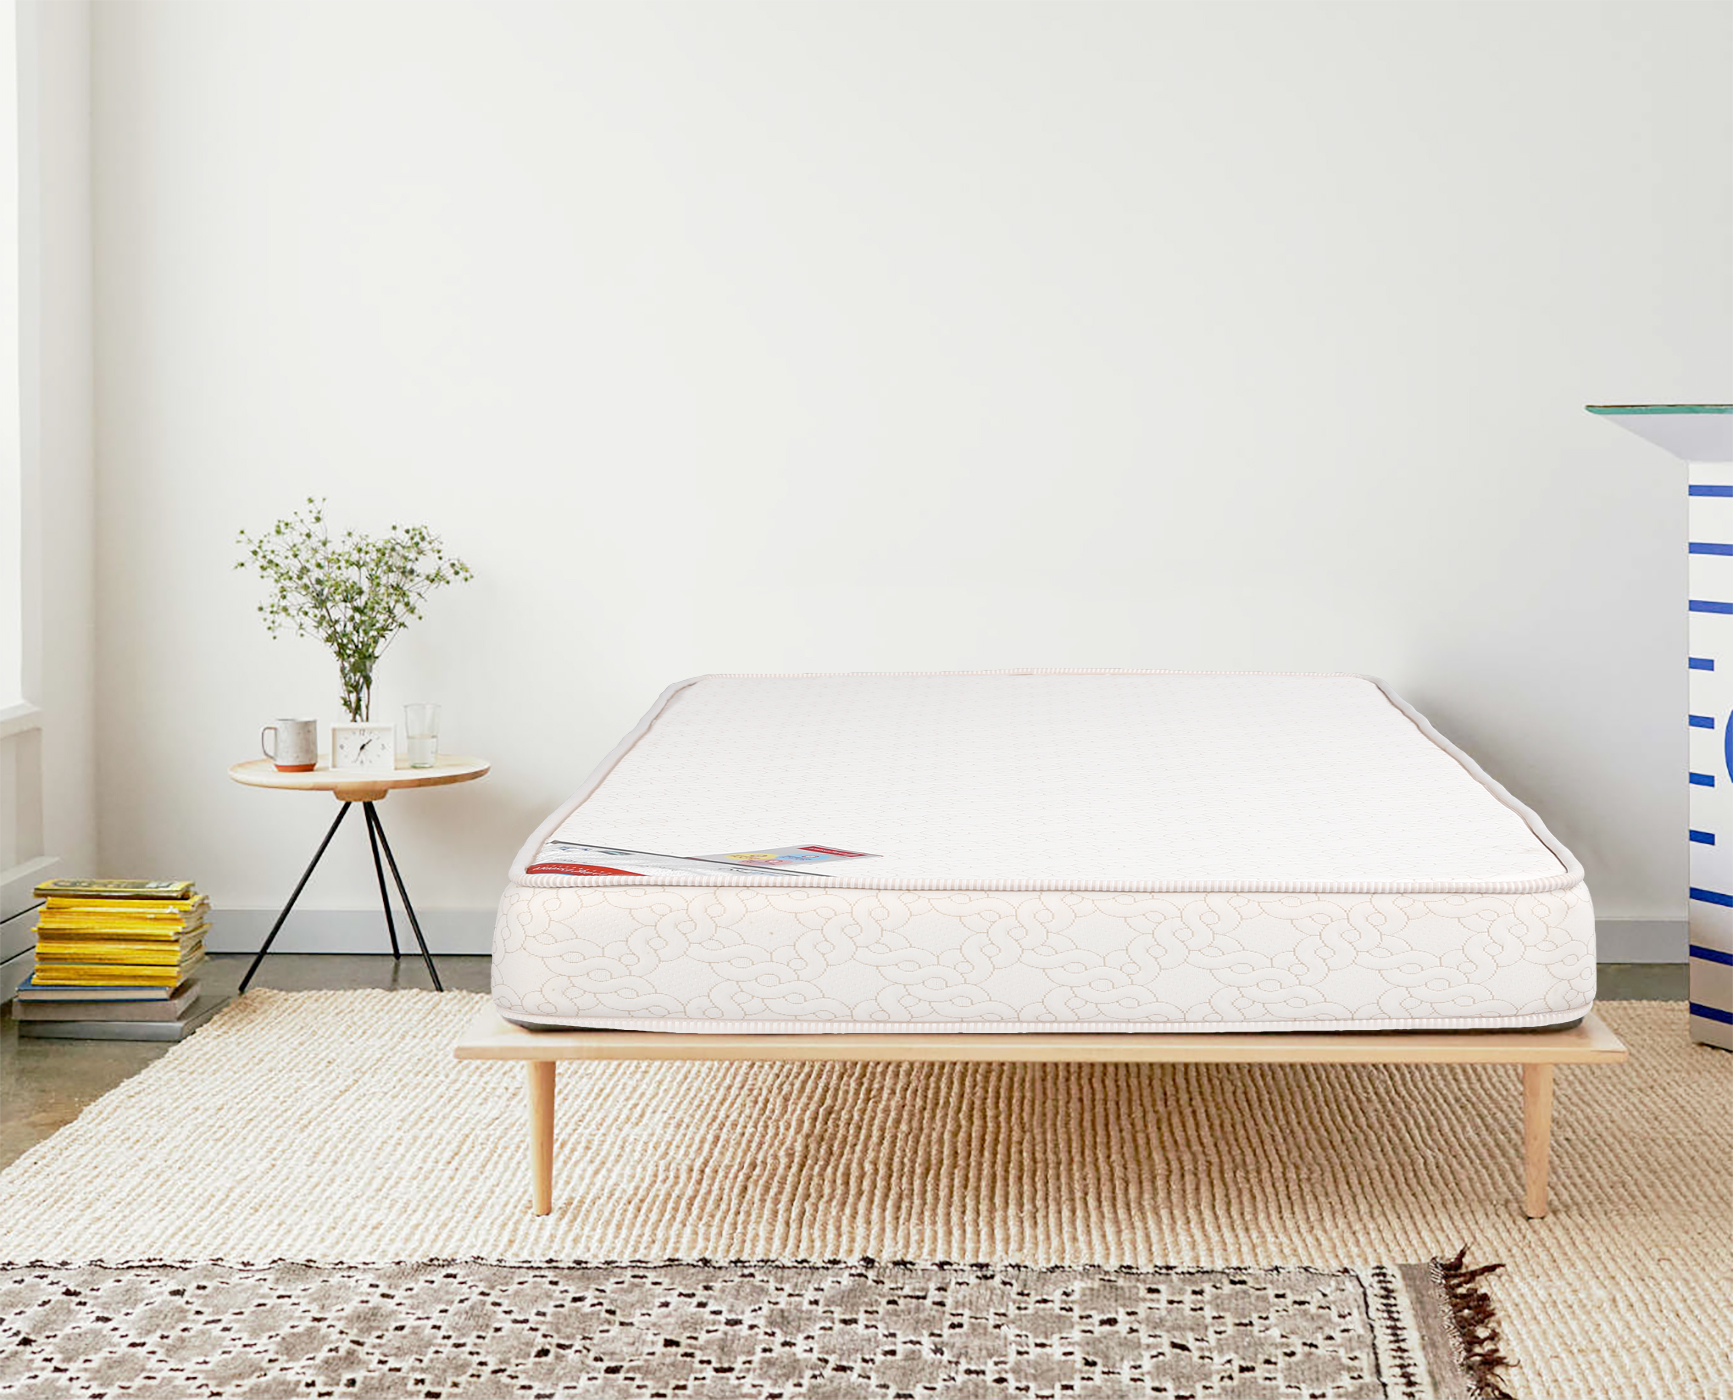 Comfort Plus Bonnell Spring Single Bed Mattress (75*36*6) in Cream Colour by HomeTown